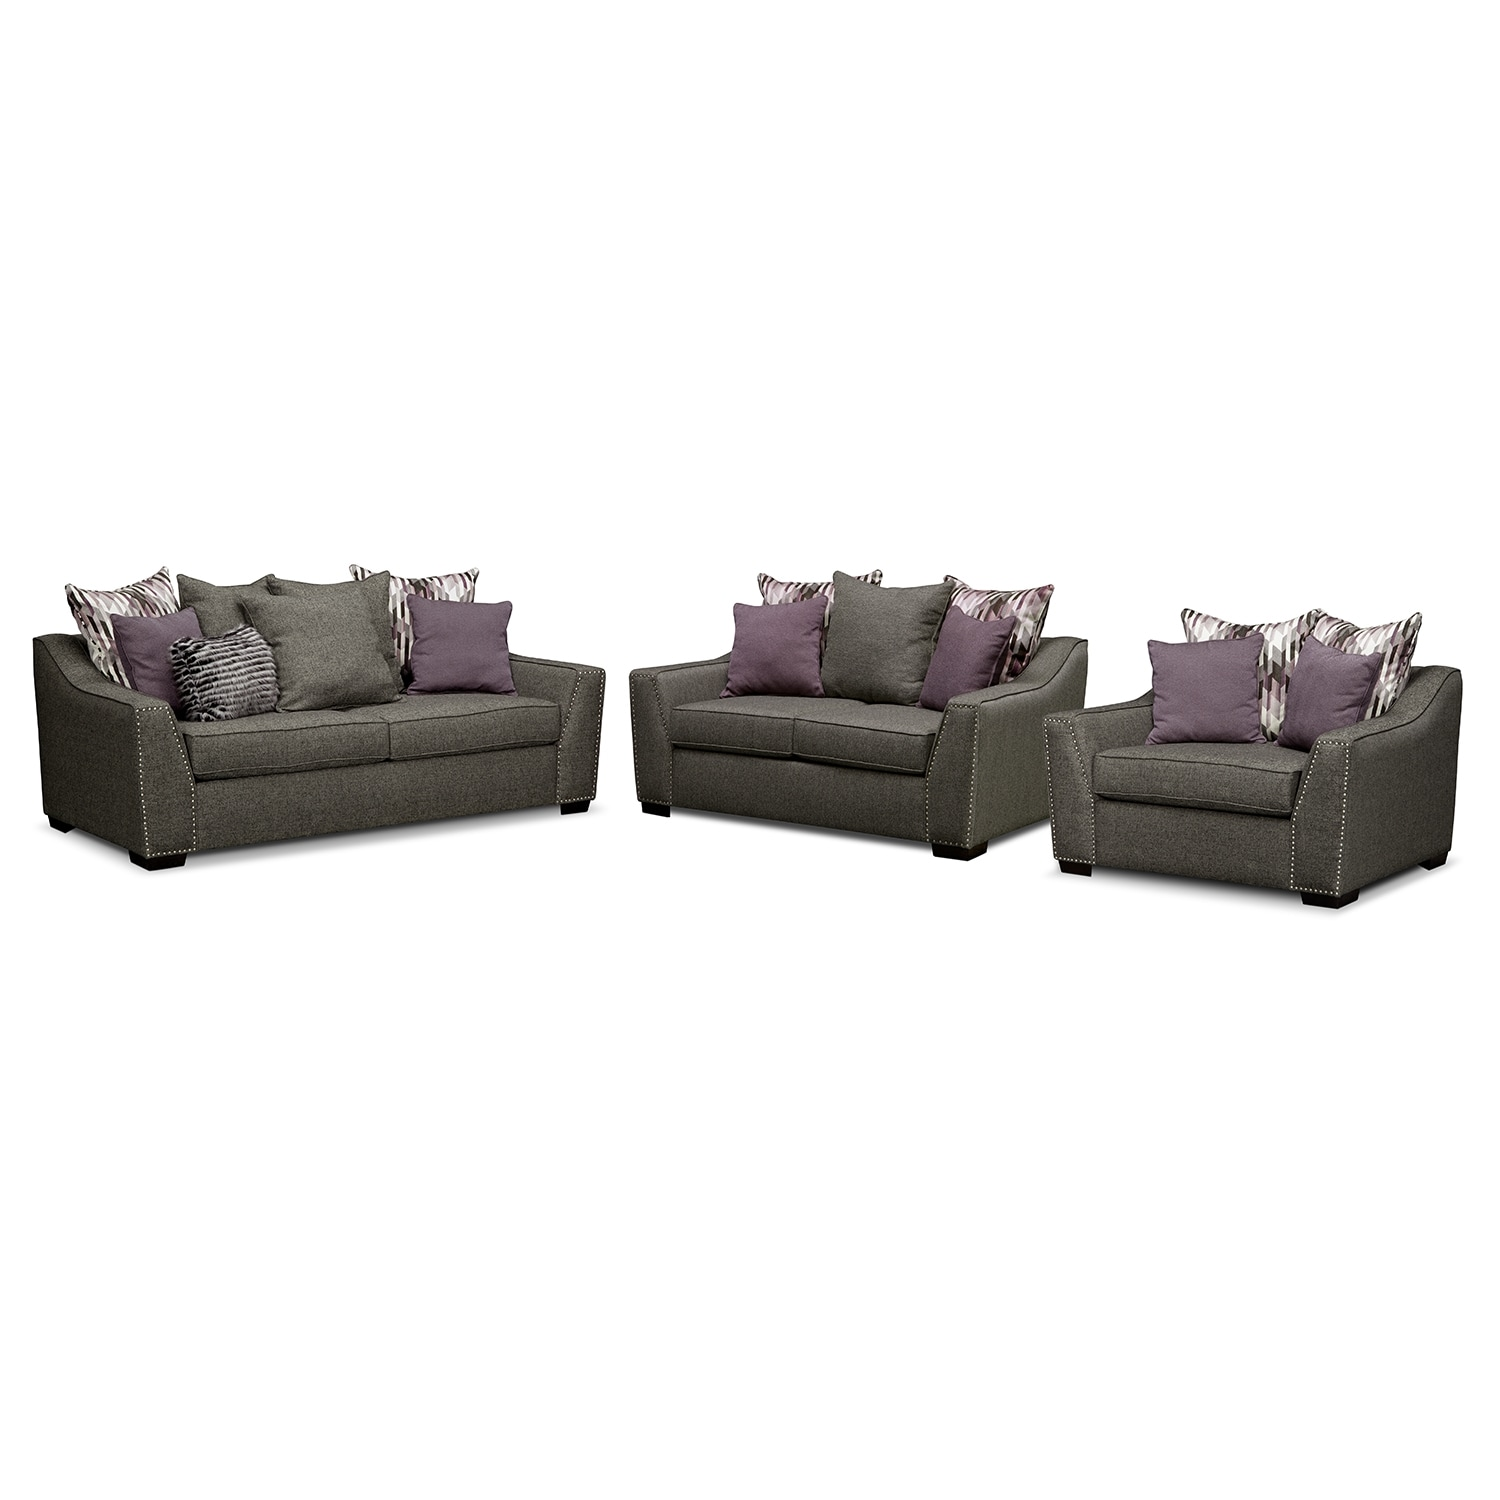 Ritz Upholstery 3 Pc Living Room Value City Furniture